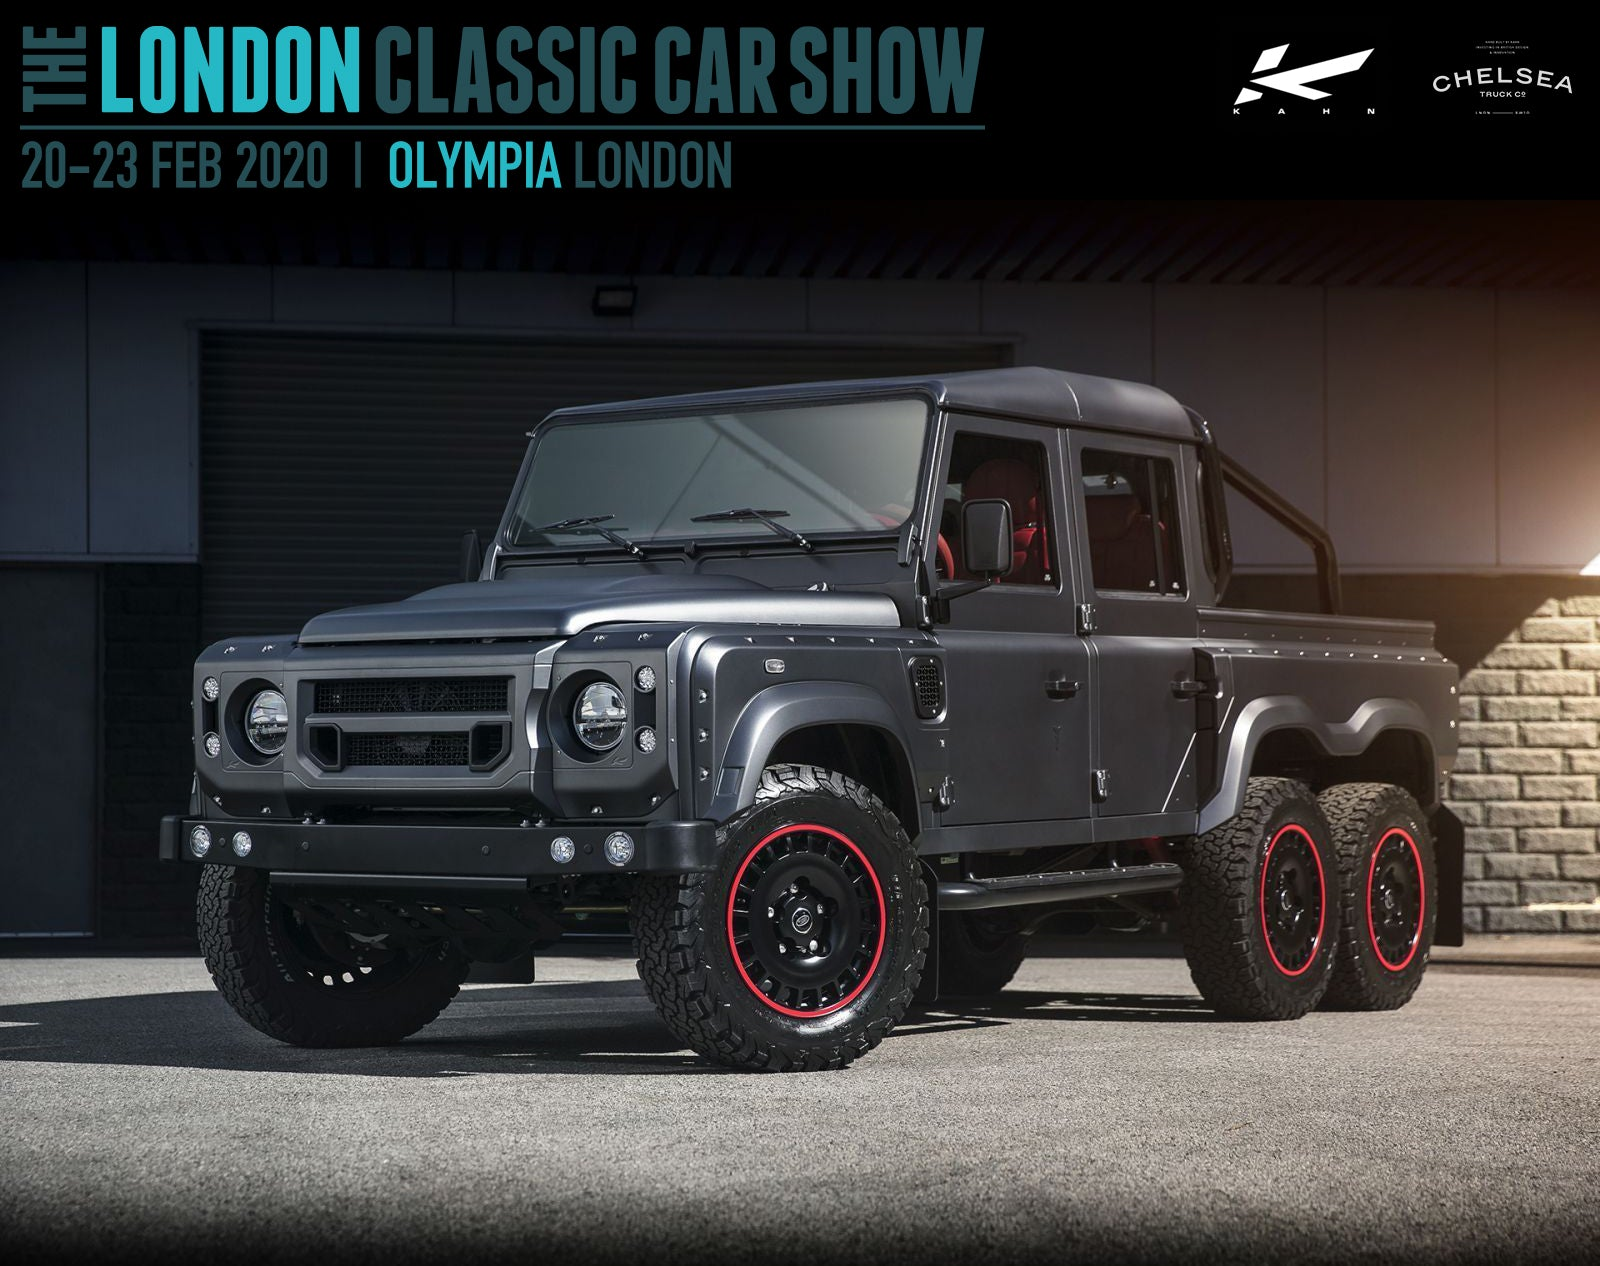 Chelsea Truck Company and Kahn Design at the London Classic Car Show